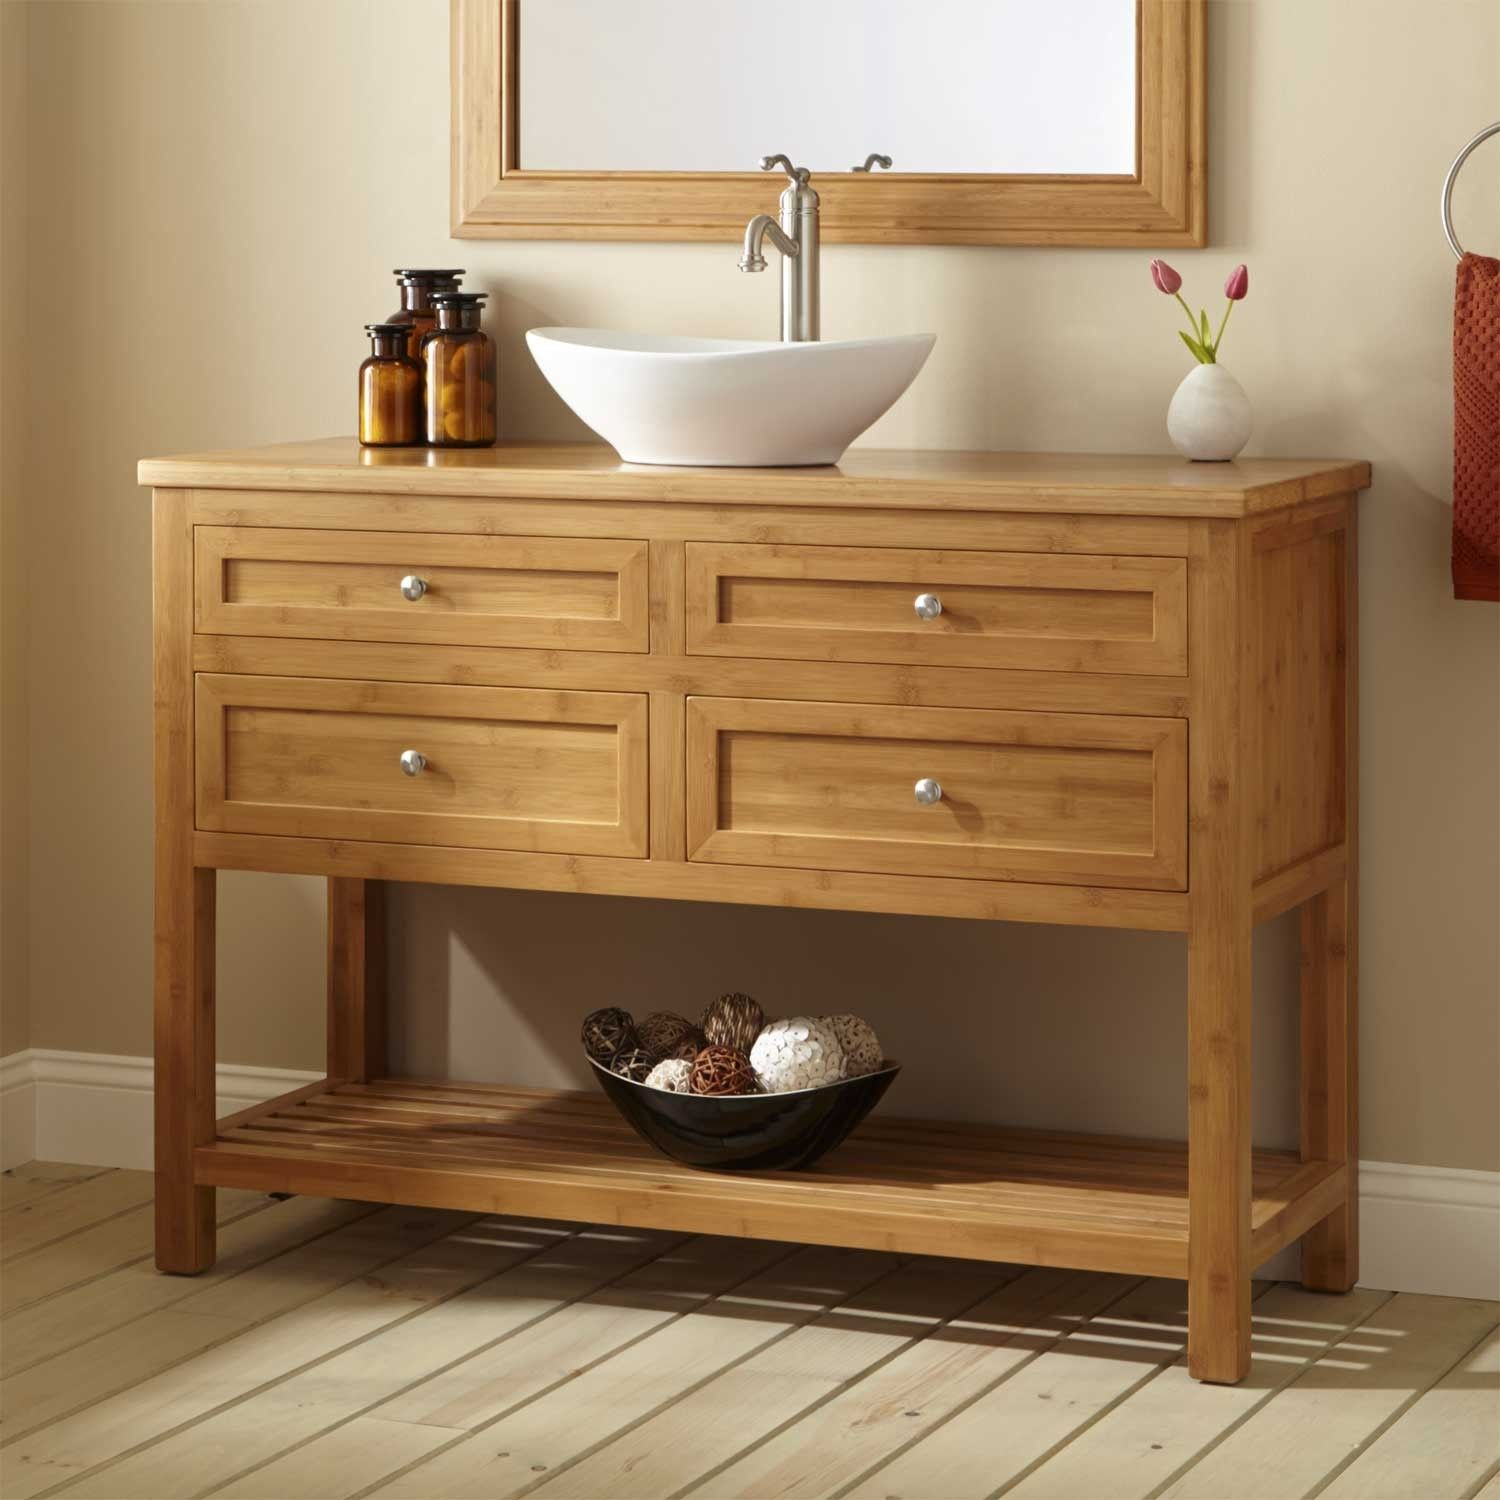 32+ Unfinished wood vanity 24 inch inspiration